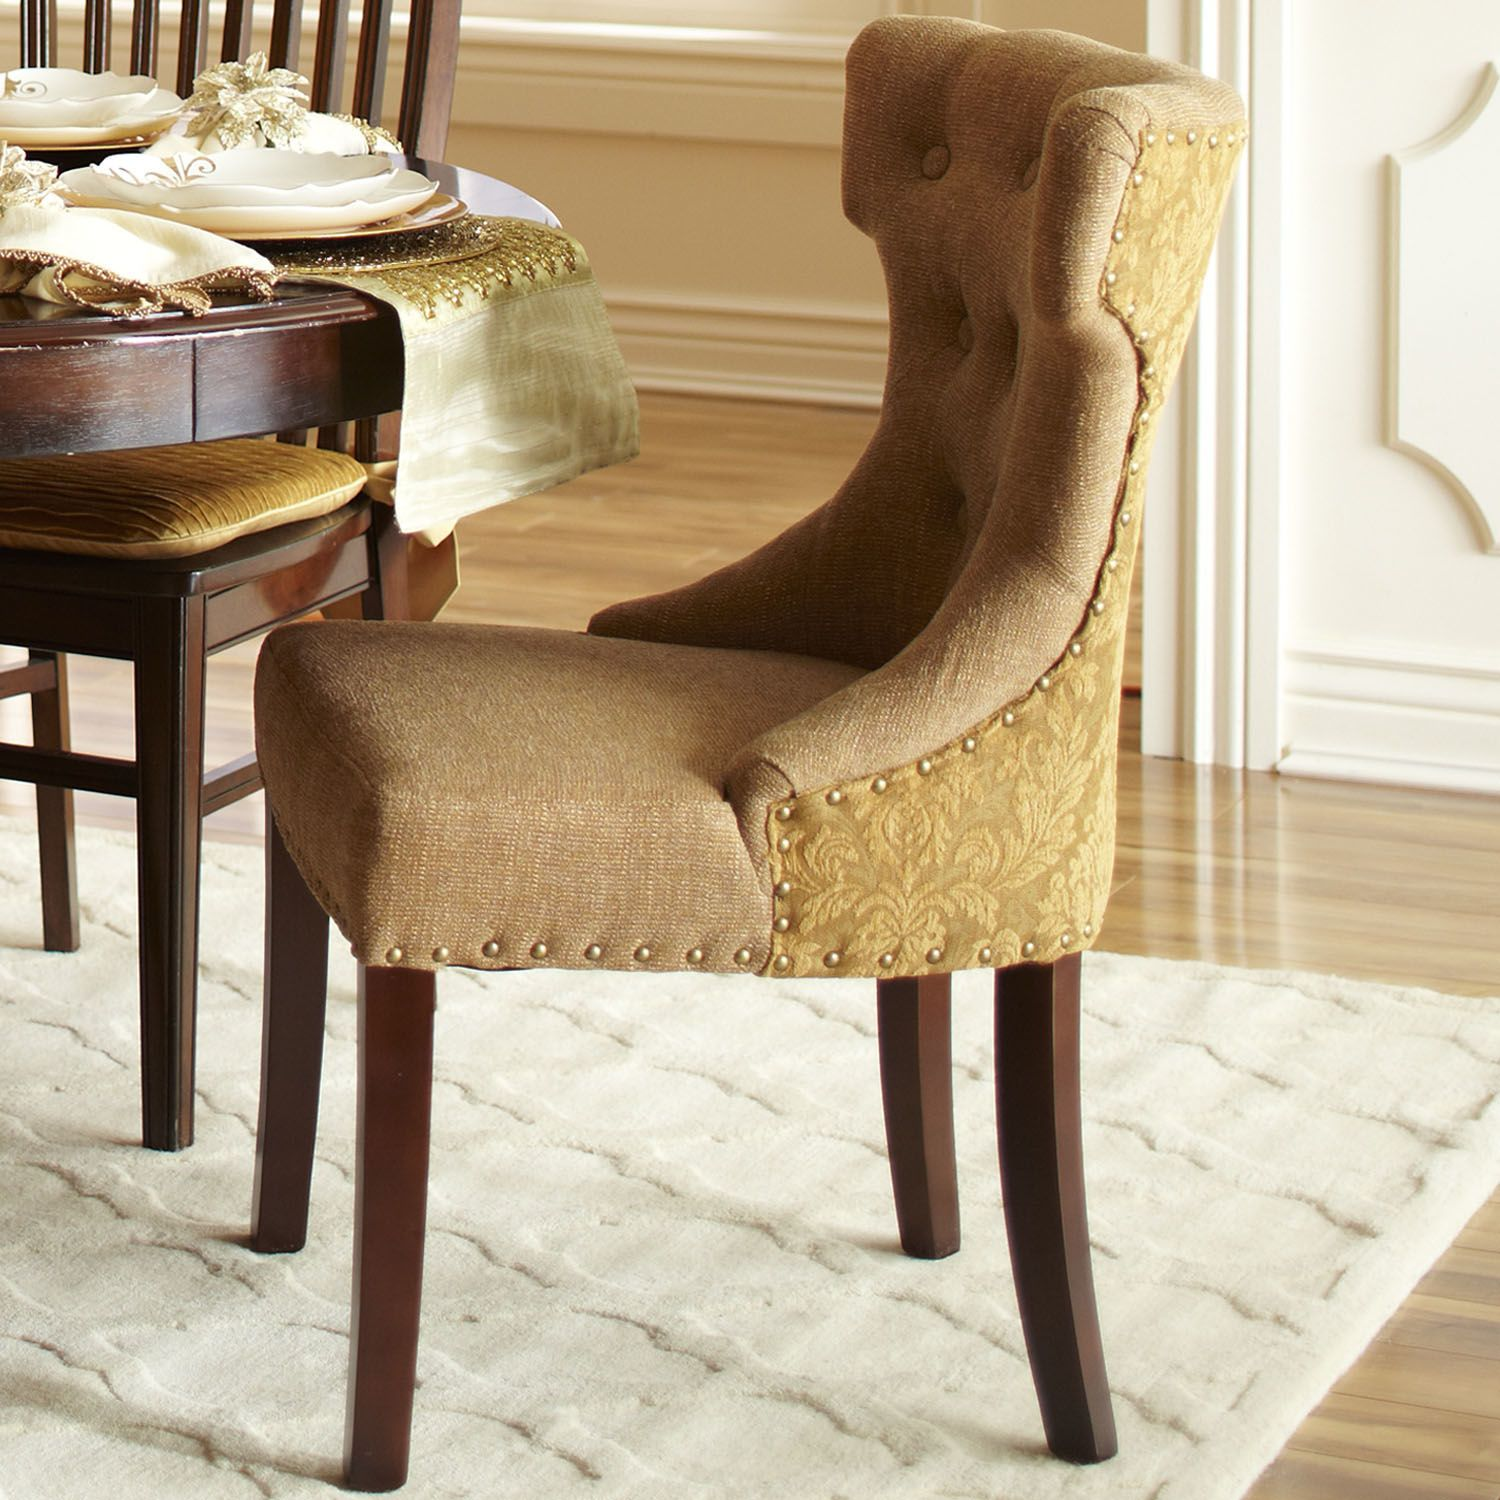 Hourglass Dining Chair Gold Damask Dining Chairs Dining Room Chairs Chair